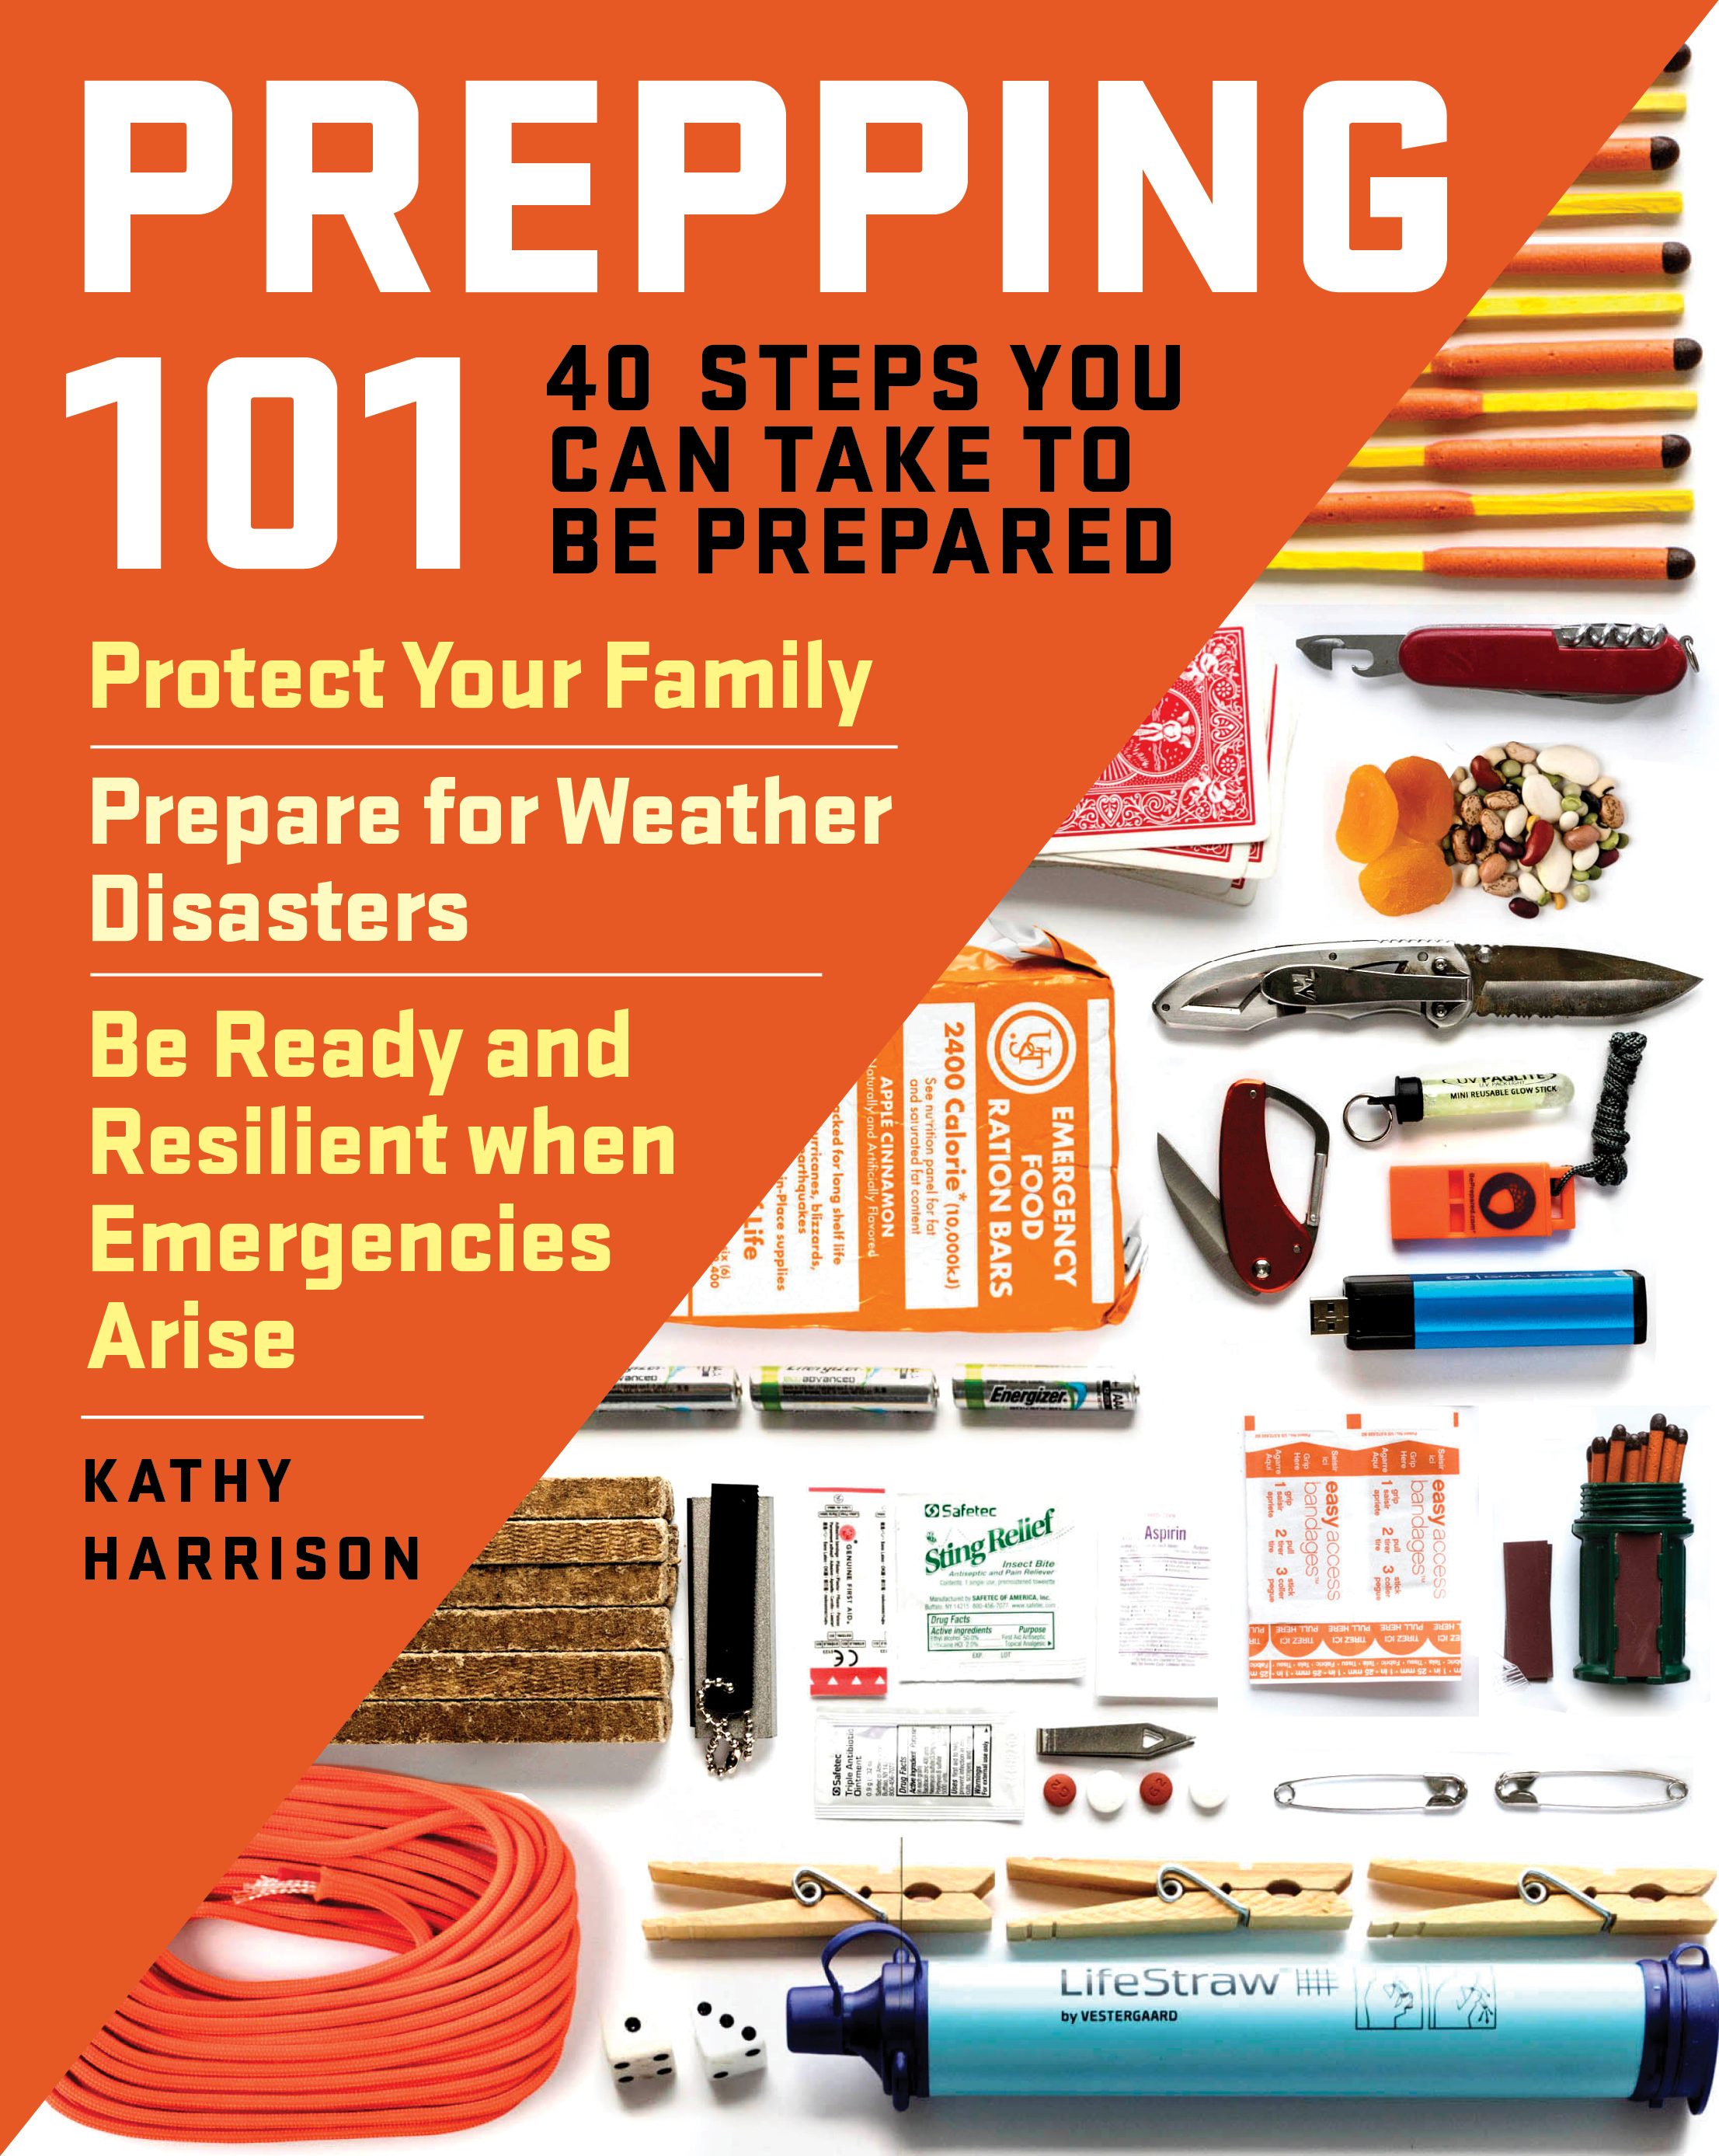 Prepping 101 40 Steps You Can Take to Be Prepared: Protect Your Family, Prepare for Weather Disasters, and Be Ready and Resilient when Emergencies Arise - Kathy Harrison